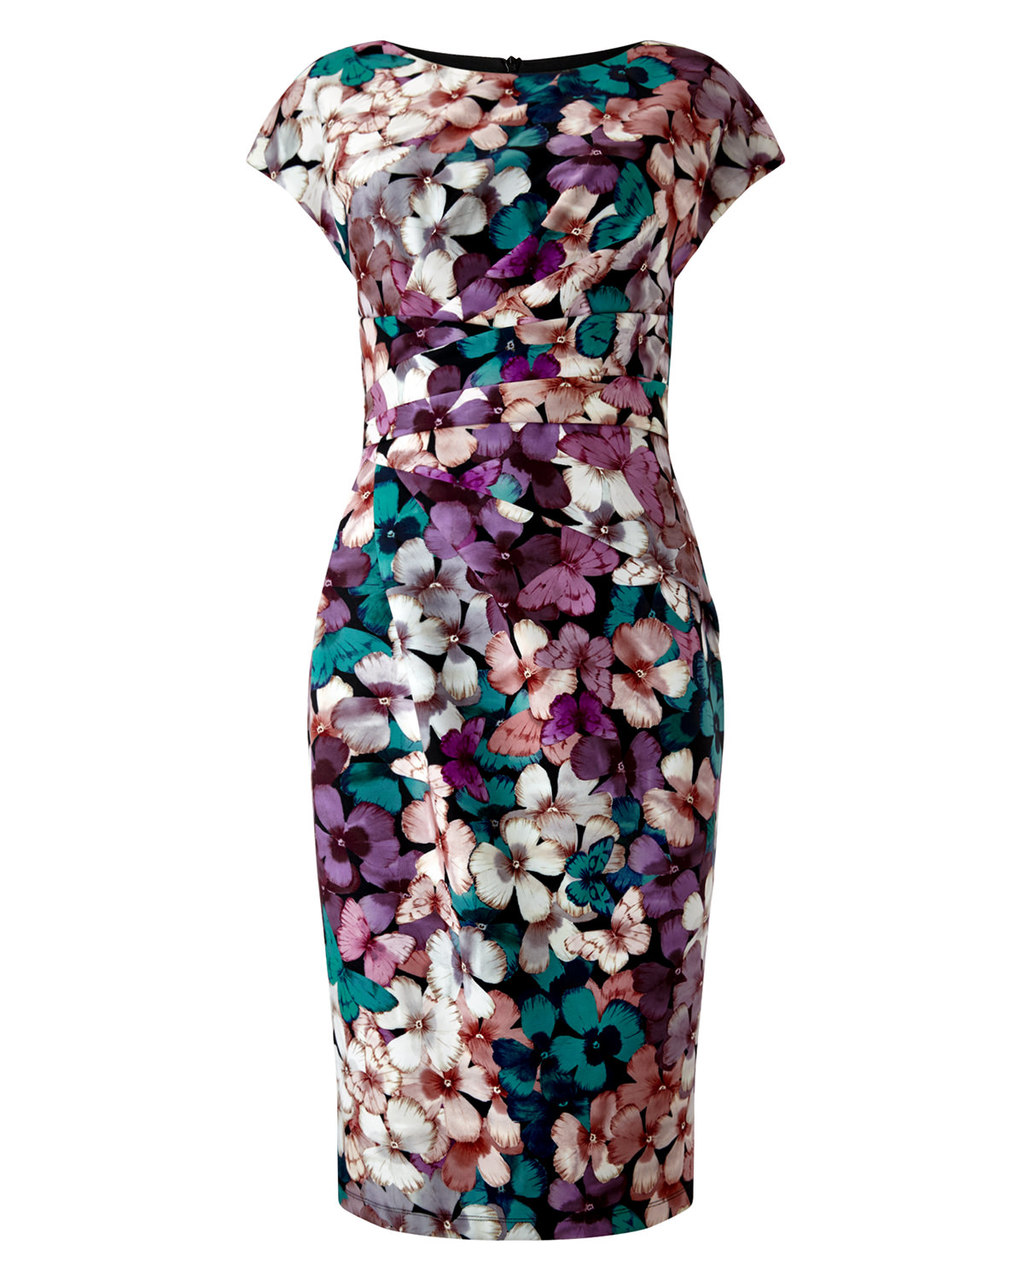 Bessy Floral Dress - style: shift; neckline: round neck; sleeve style: capped; secondary colour: ivory/cream; predominant colour: aubergine; occasions: evening, occasion; length: on the knee; fit: body skimming; fibres: polyester/polyamide - stretch; sleeve length: short sleeve; pattern type: fabric; pattern: florals; texture group: jersey - stretchy/drapey; multicoloured: multicoloured; season: a/w 2015